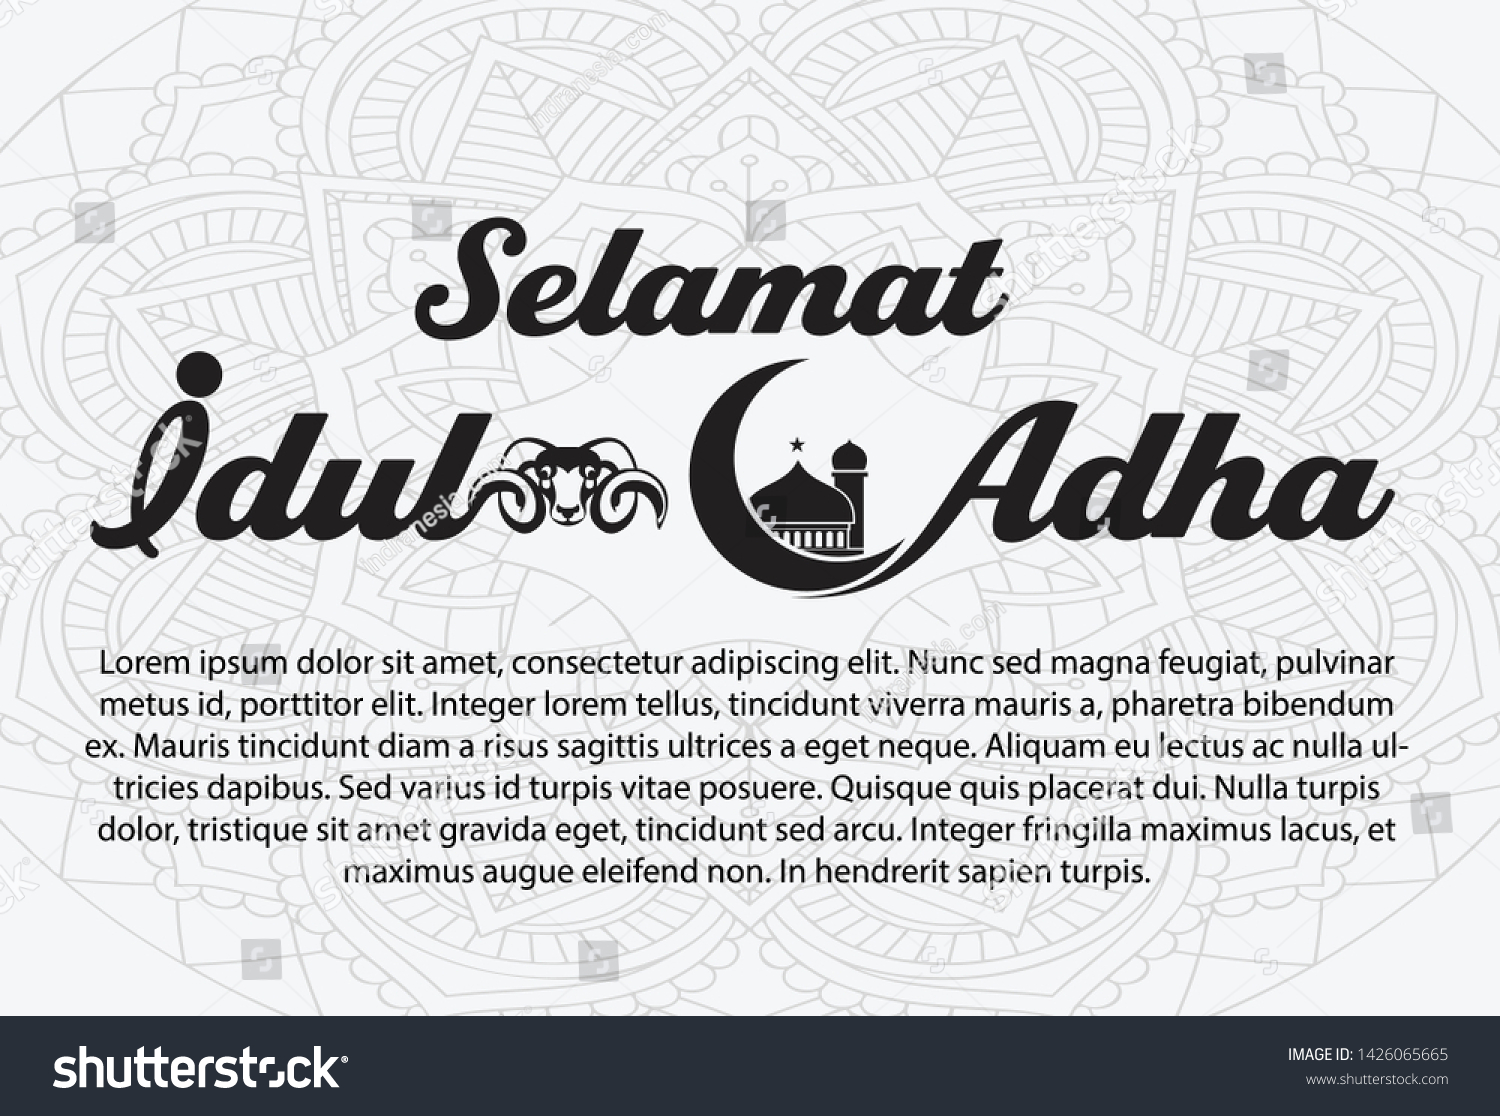 selamat idul adha translation happy eid stock vector royalty free 1426065665 https www shutterstock com image vector selamat idul adha translation happy eid 1426065665